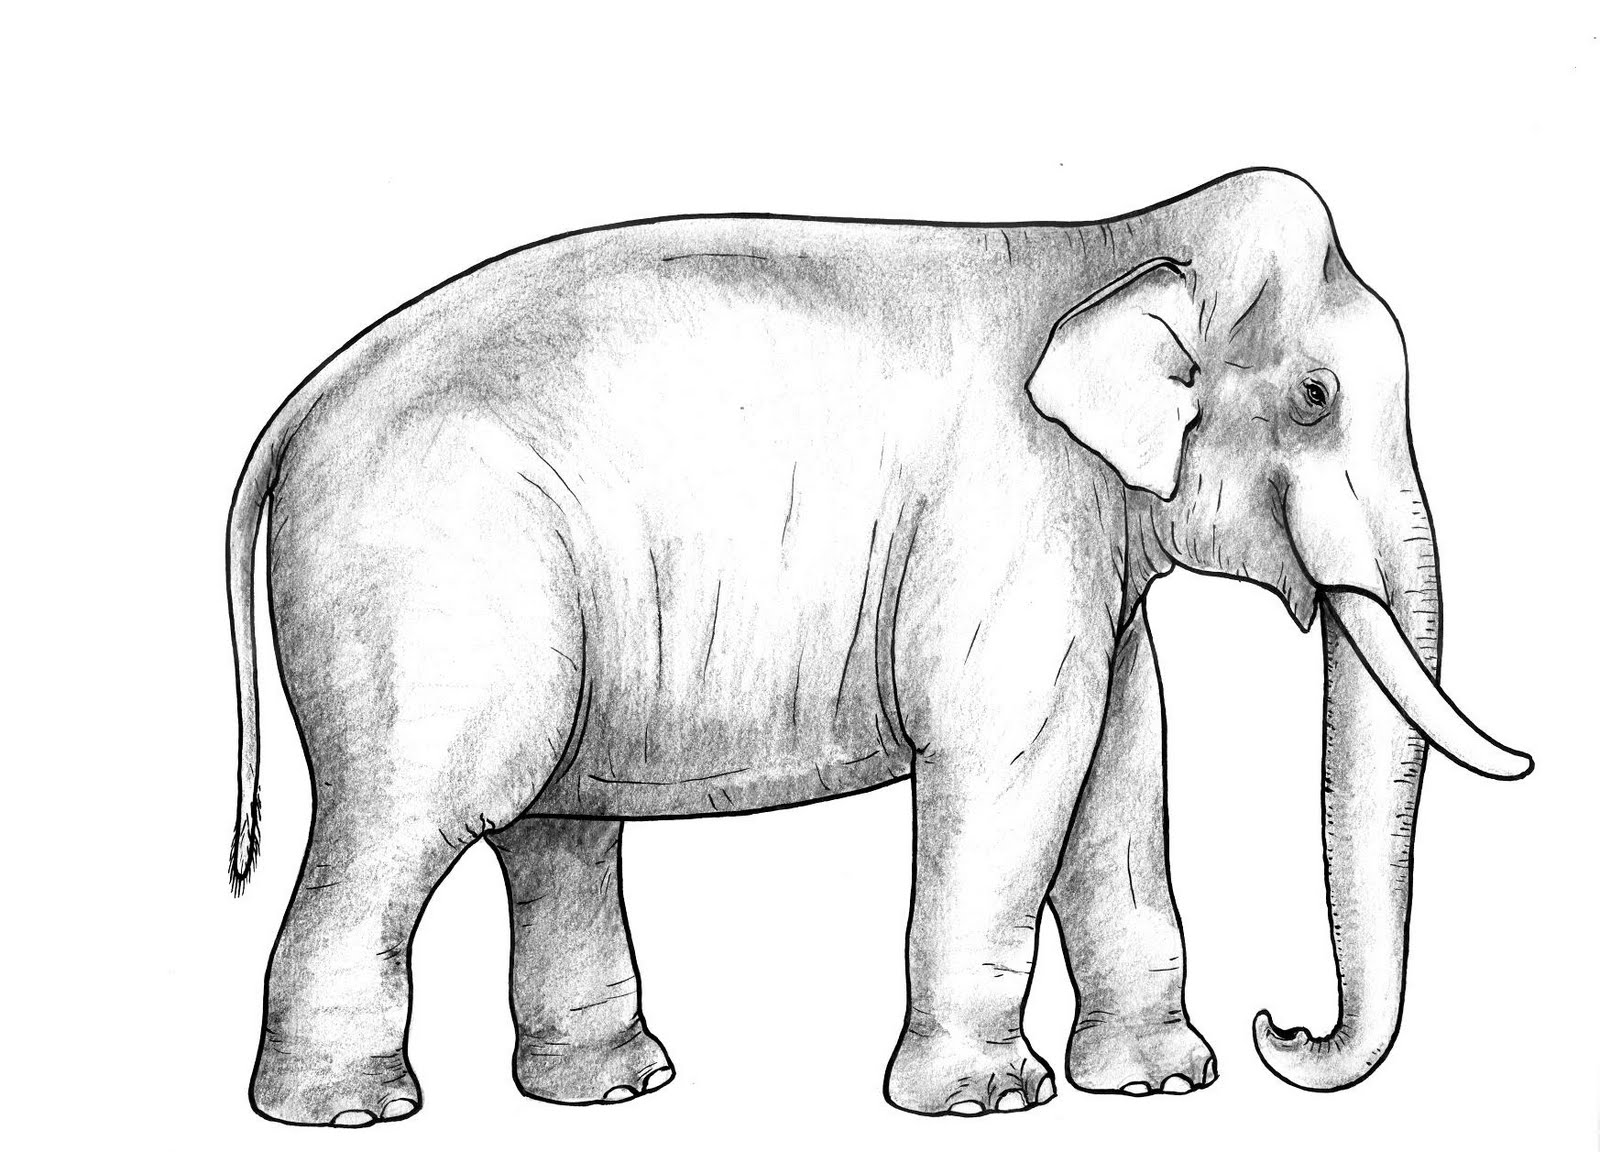 the close resemblance between woolly mammoth to todays elephants Resemblance nn calmed vbd vbn dissolutions nns pulleys nns mandating vbg serge nn elephants nns erythroid nn erembal nnp.